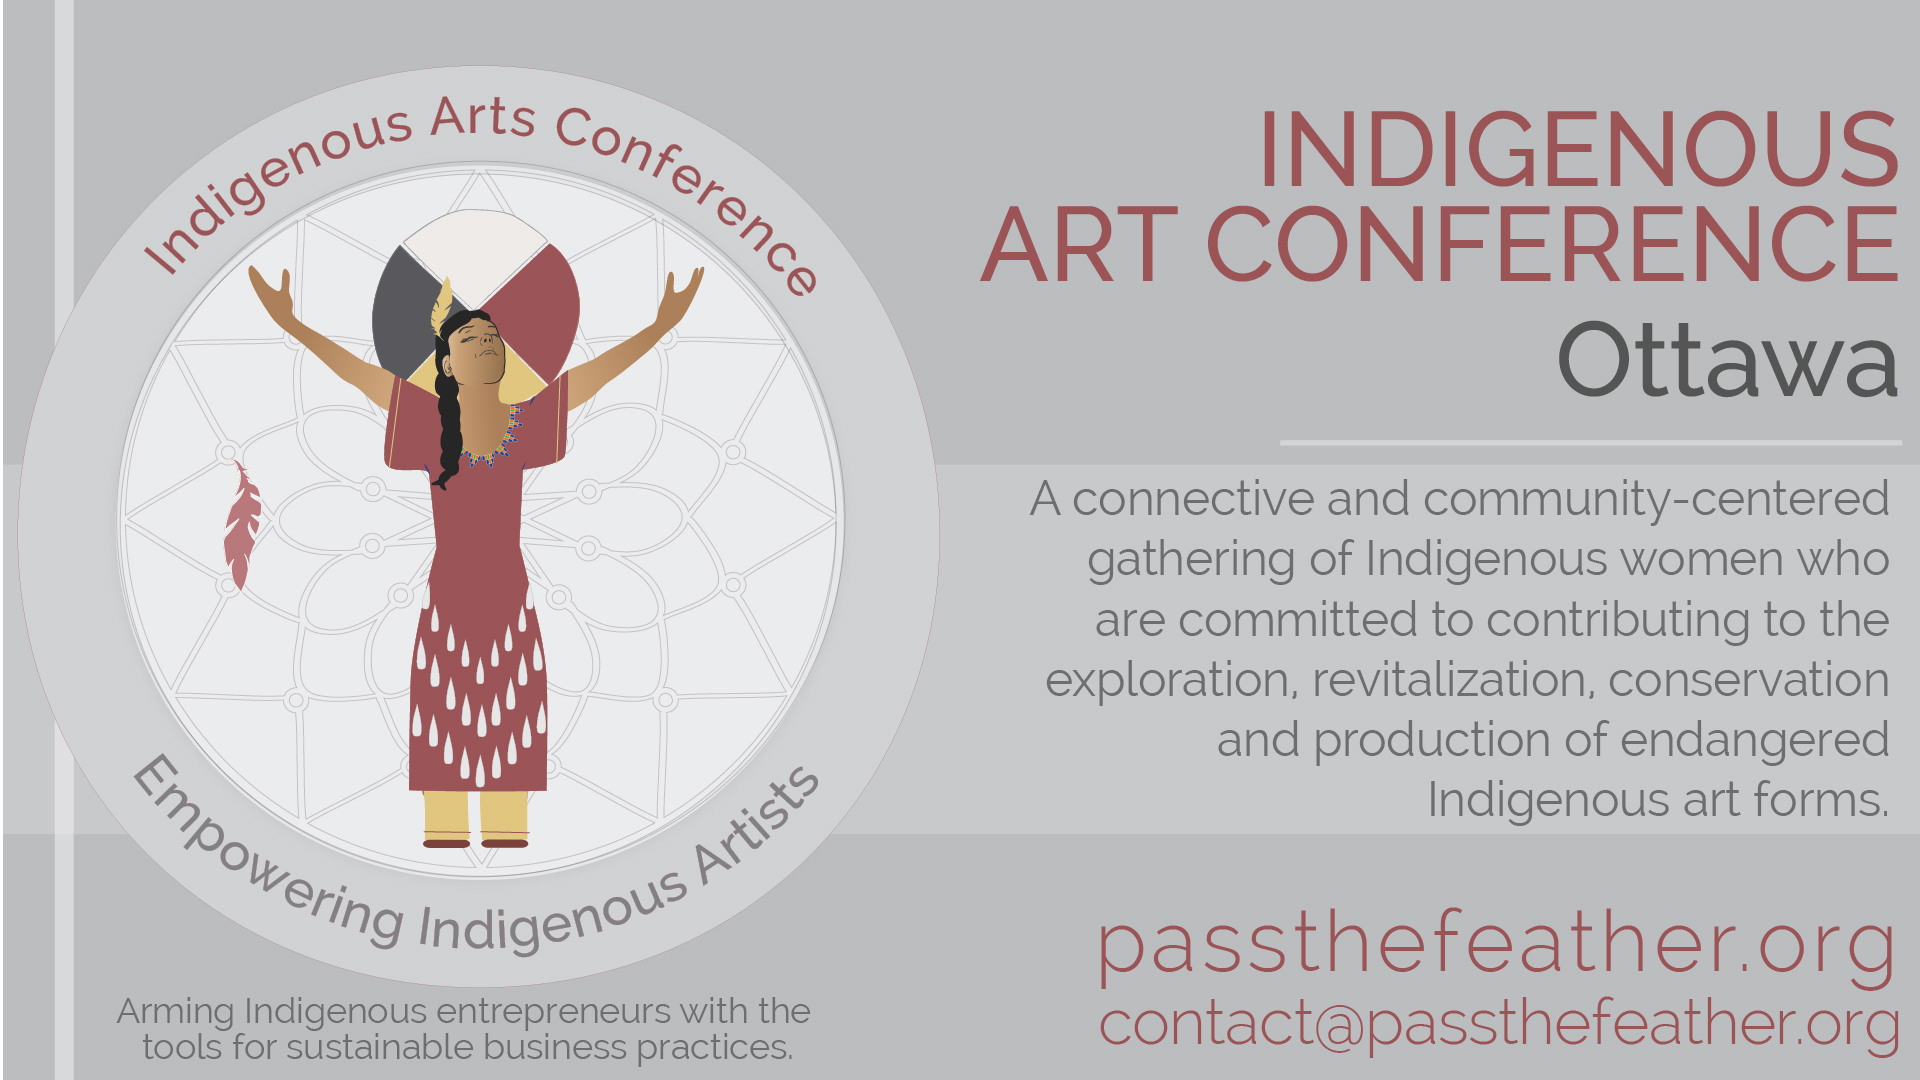 Indigenous women's arts conference, ottawa, iac, pass the feather, aboriginal arts collective of canada, conference